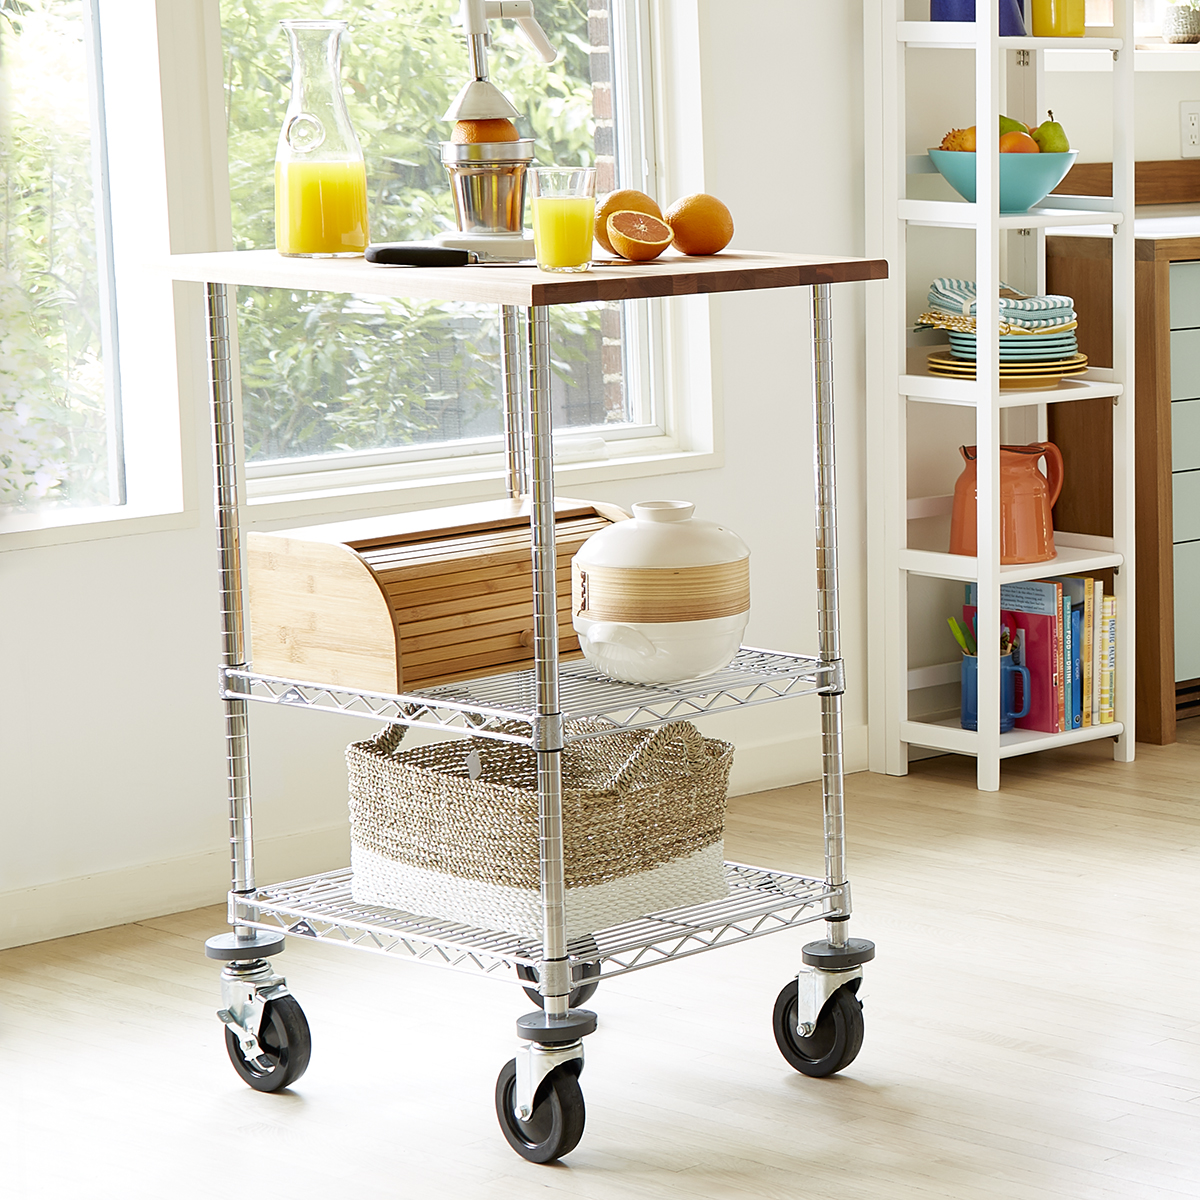 Metro Commercial Industrial Chef's Cart